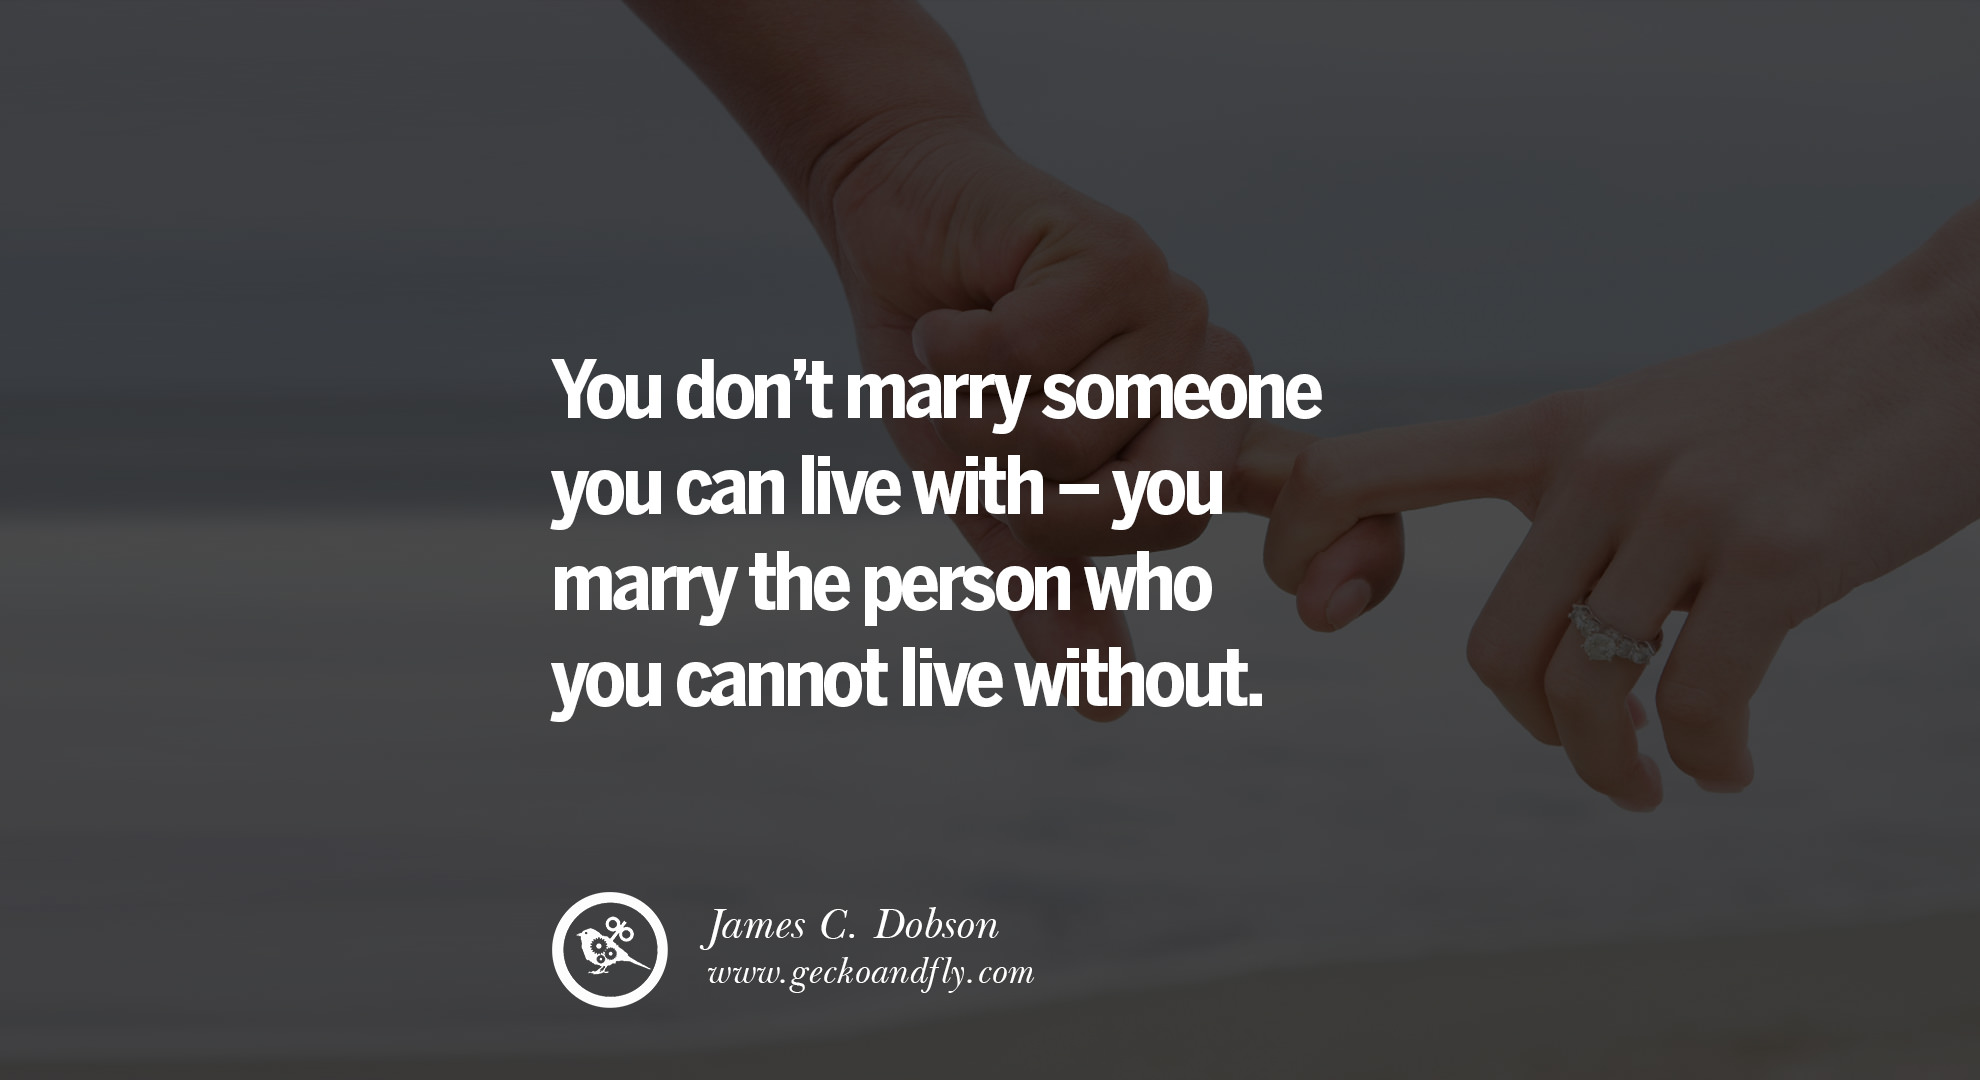 Love Marriage Quotes Impressive 40 Romantic Quotes About Love Life Marriage And Relationships